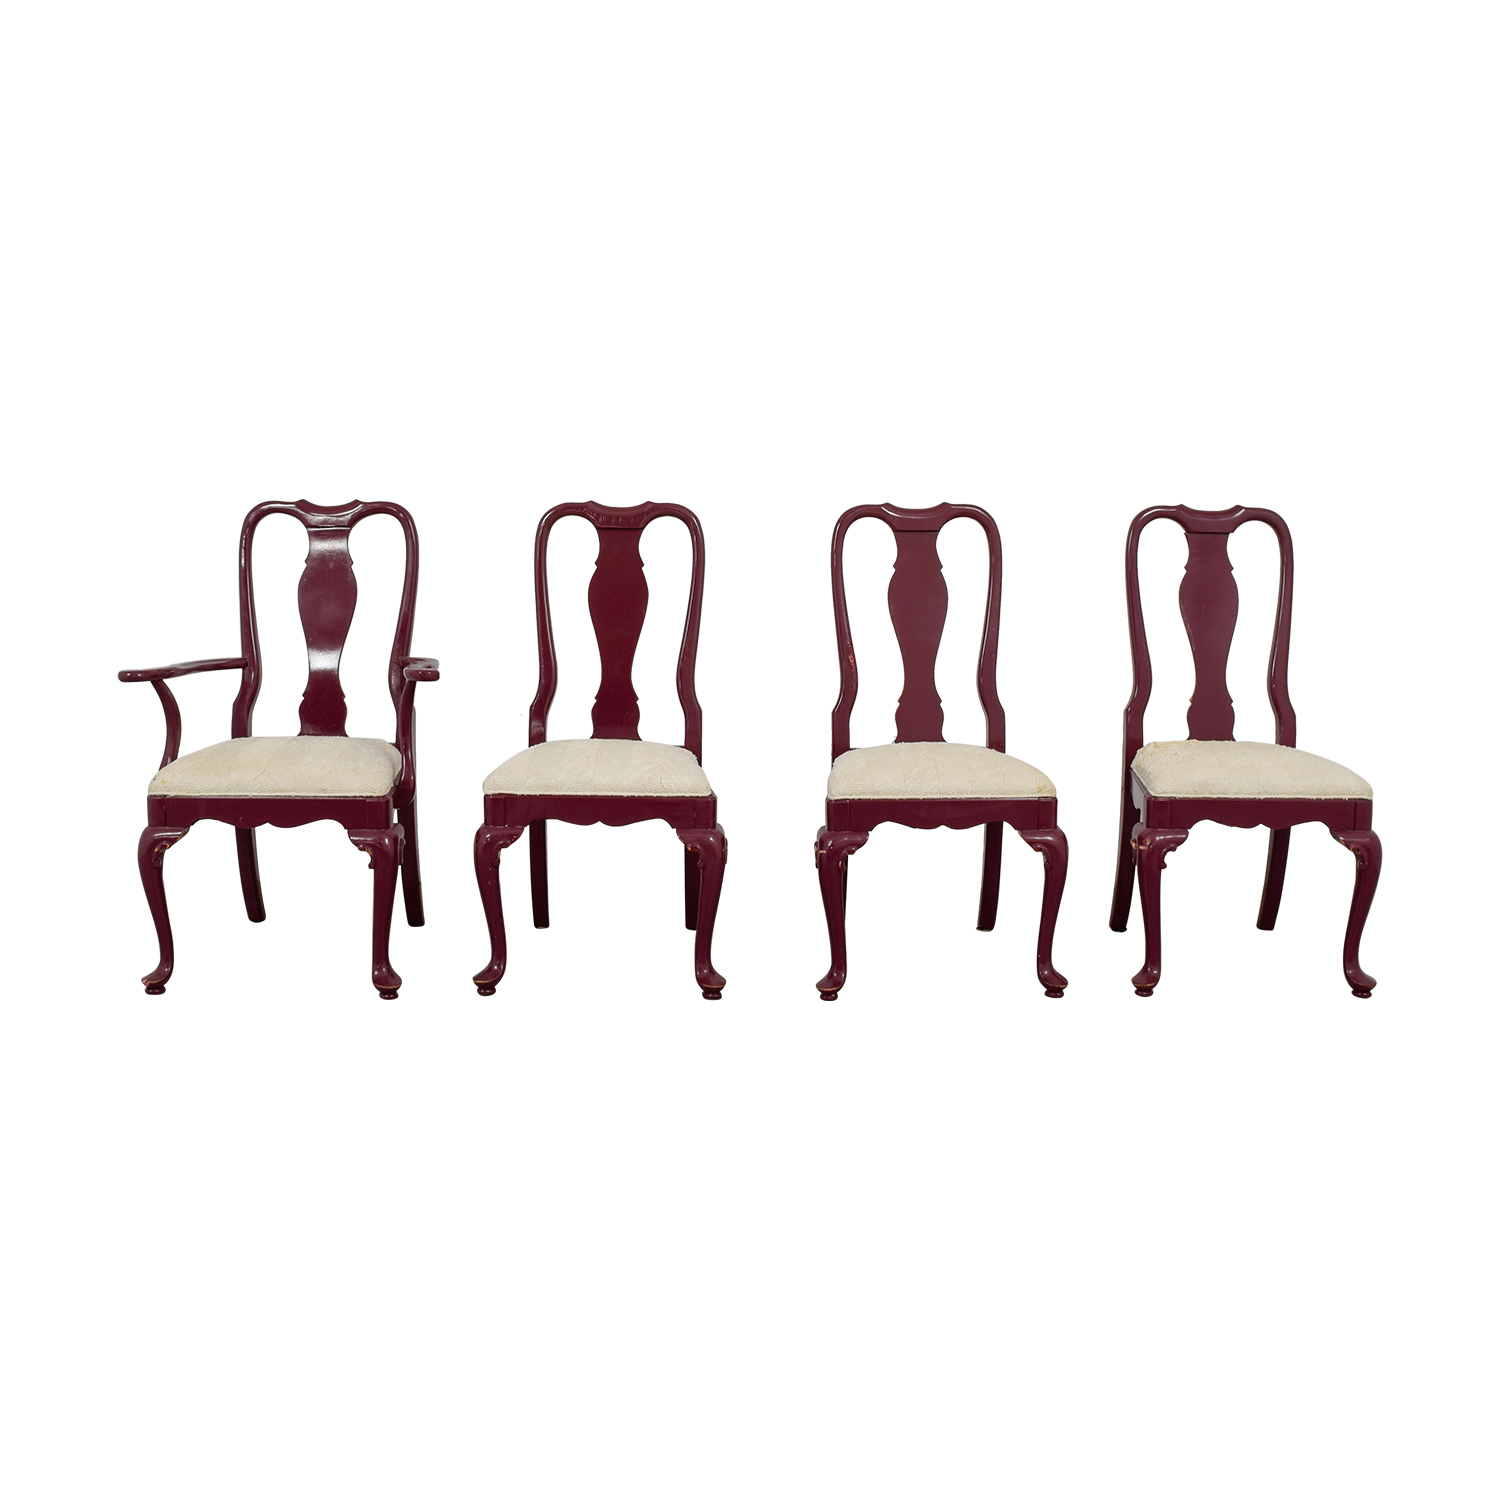 Century Chair Co Carved Wood Chairs and Arm Chair sale